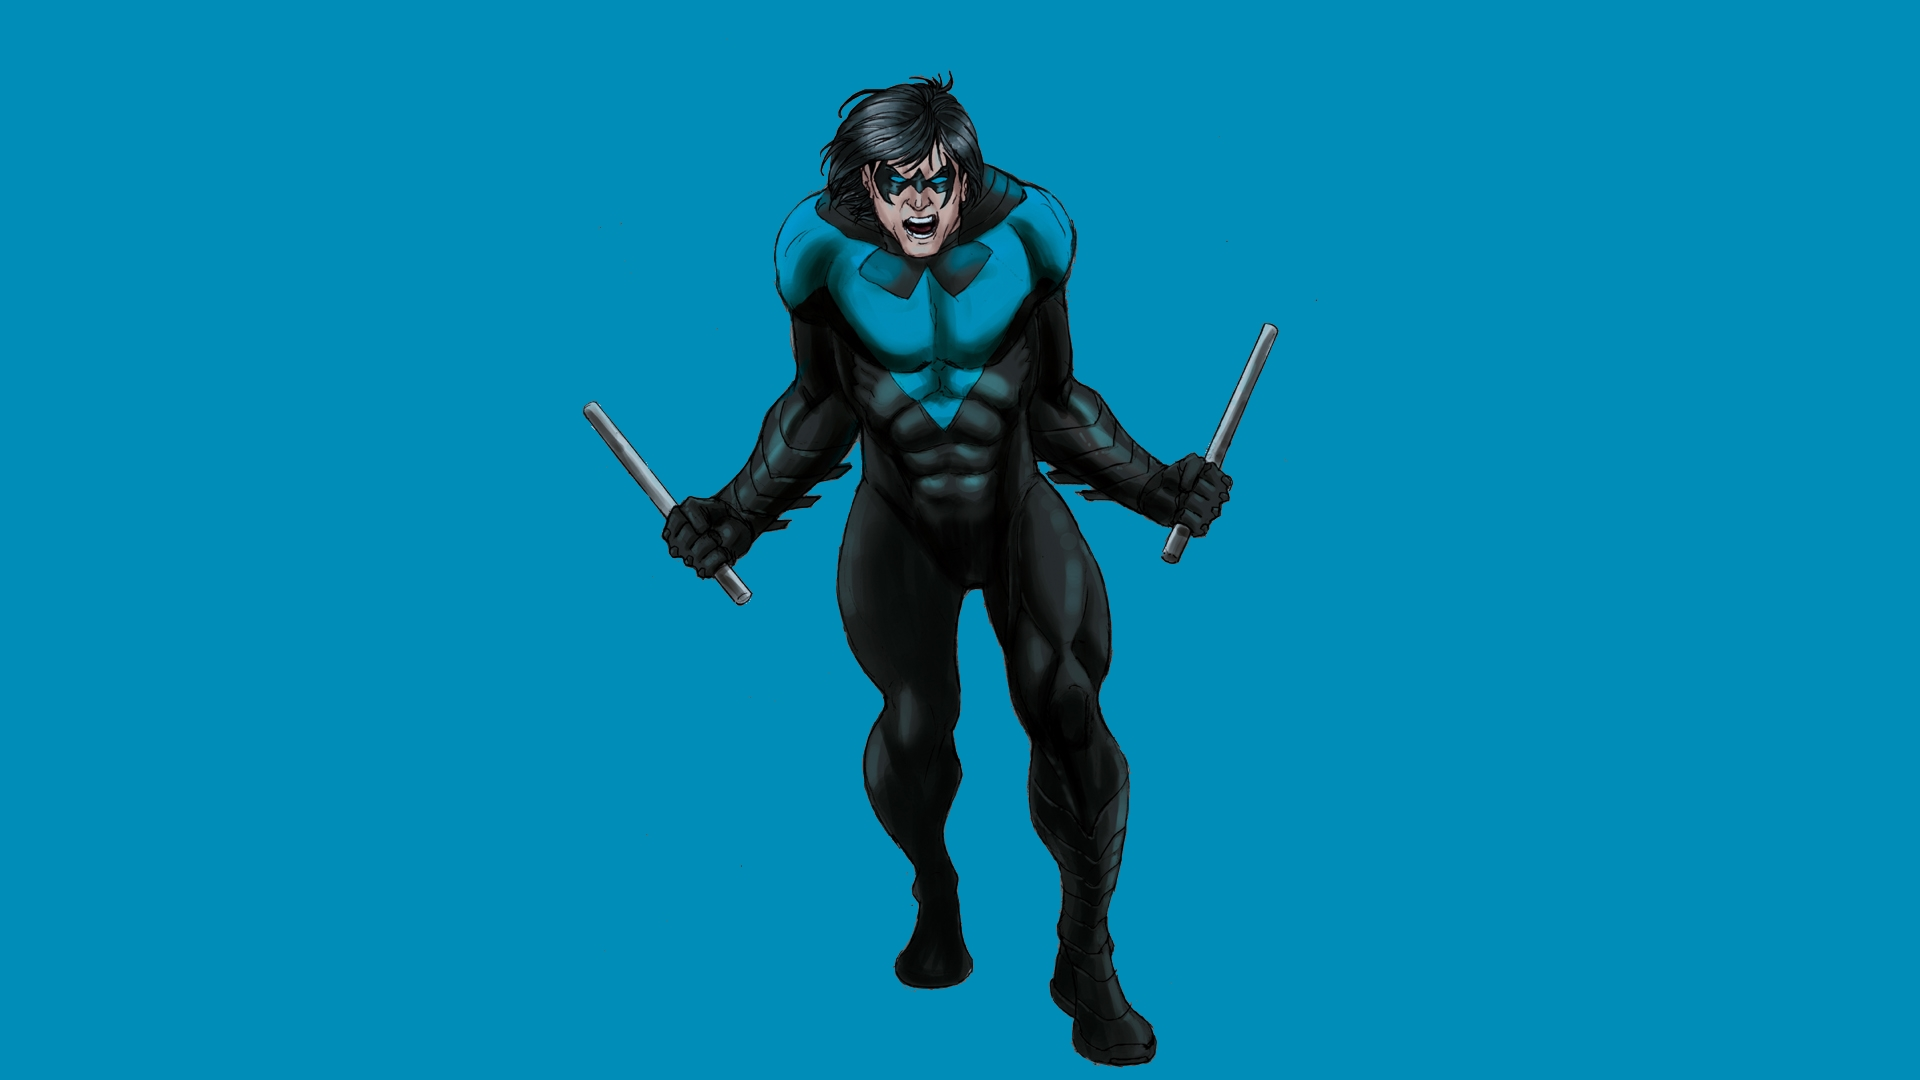 Nightwing HD Wallpaper | Background Image | 1920x1080 | ID ...